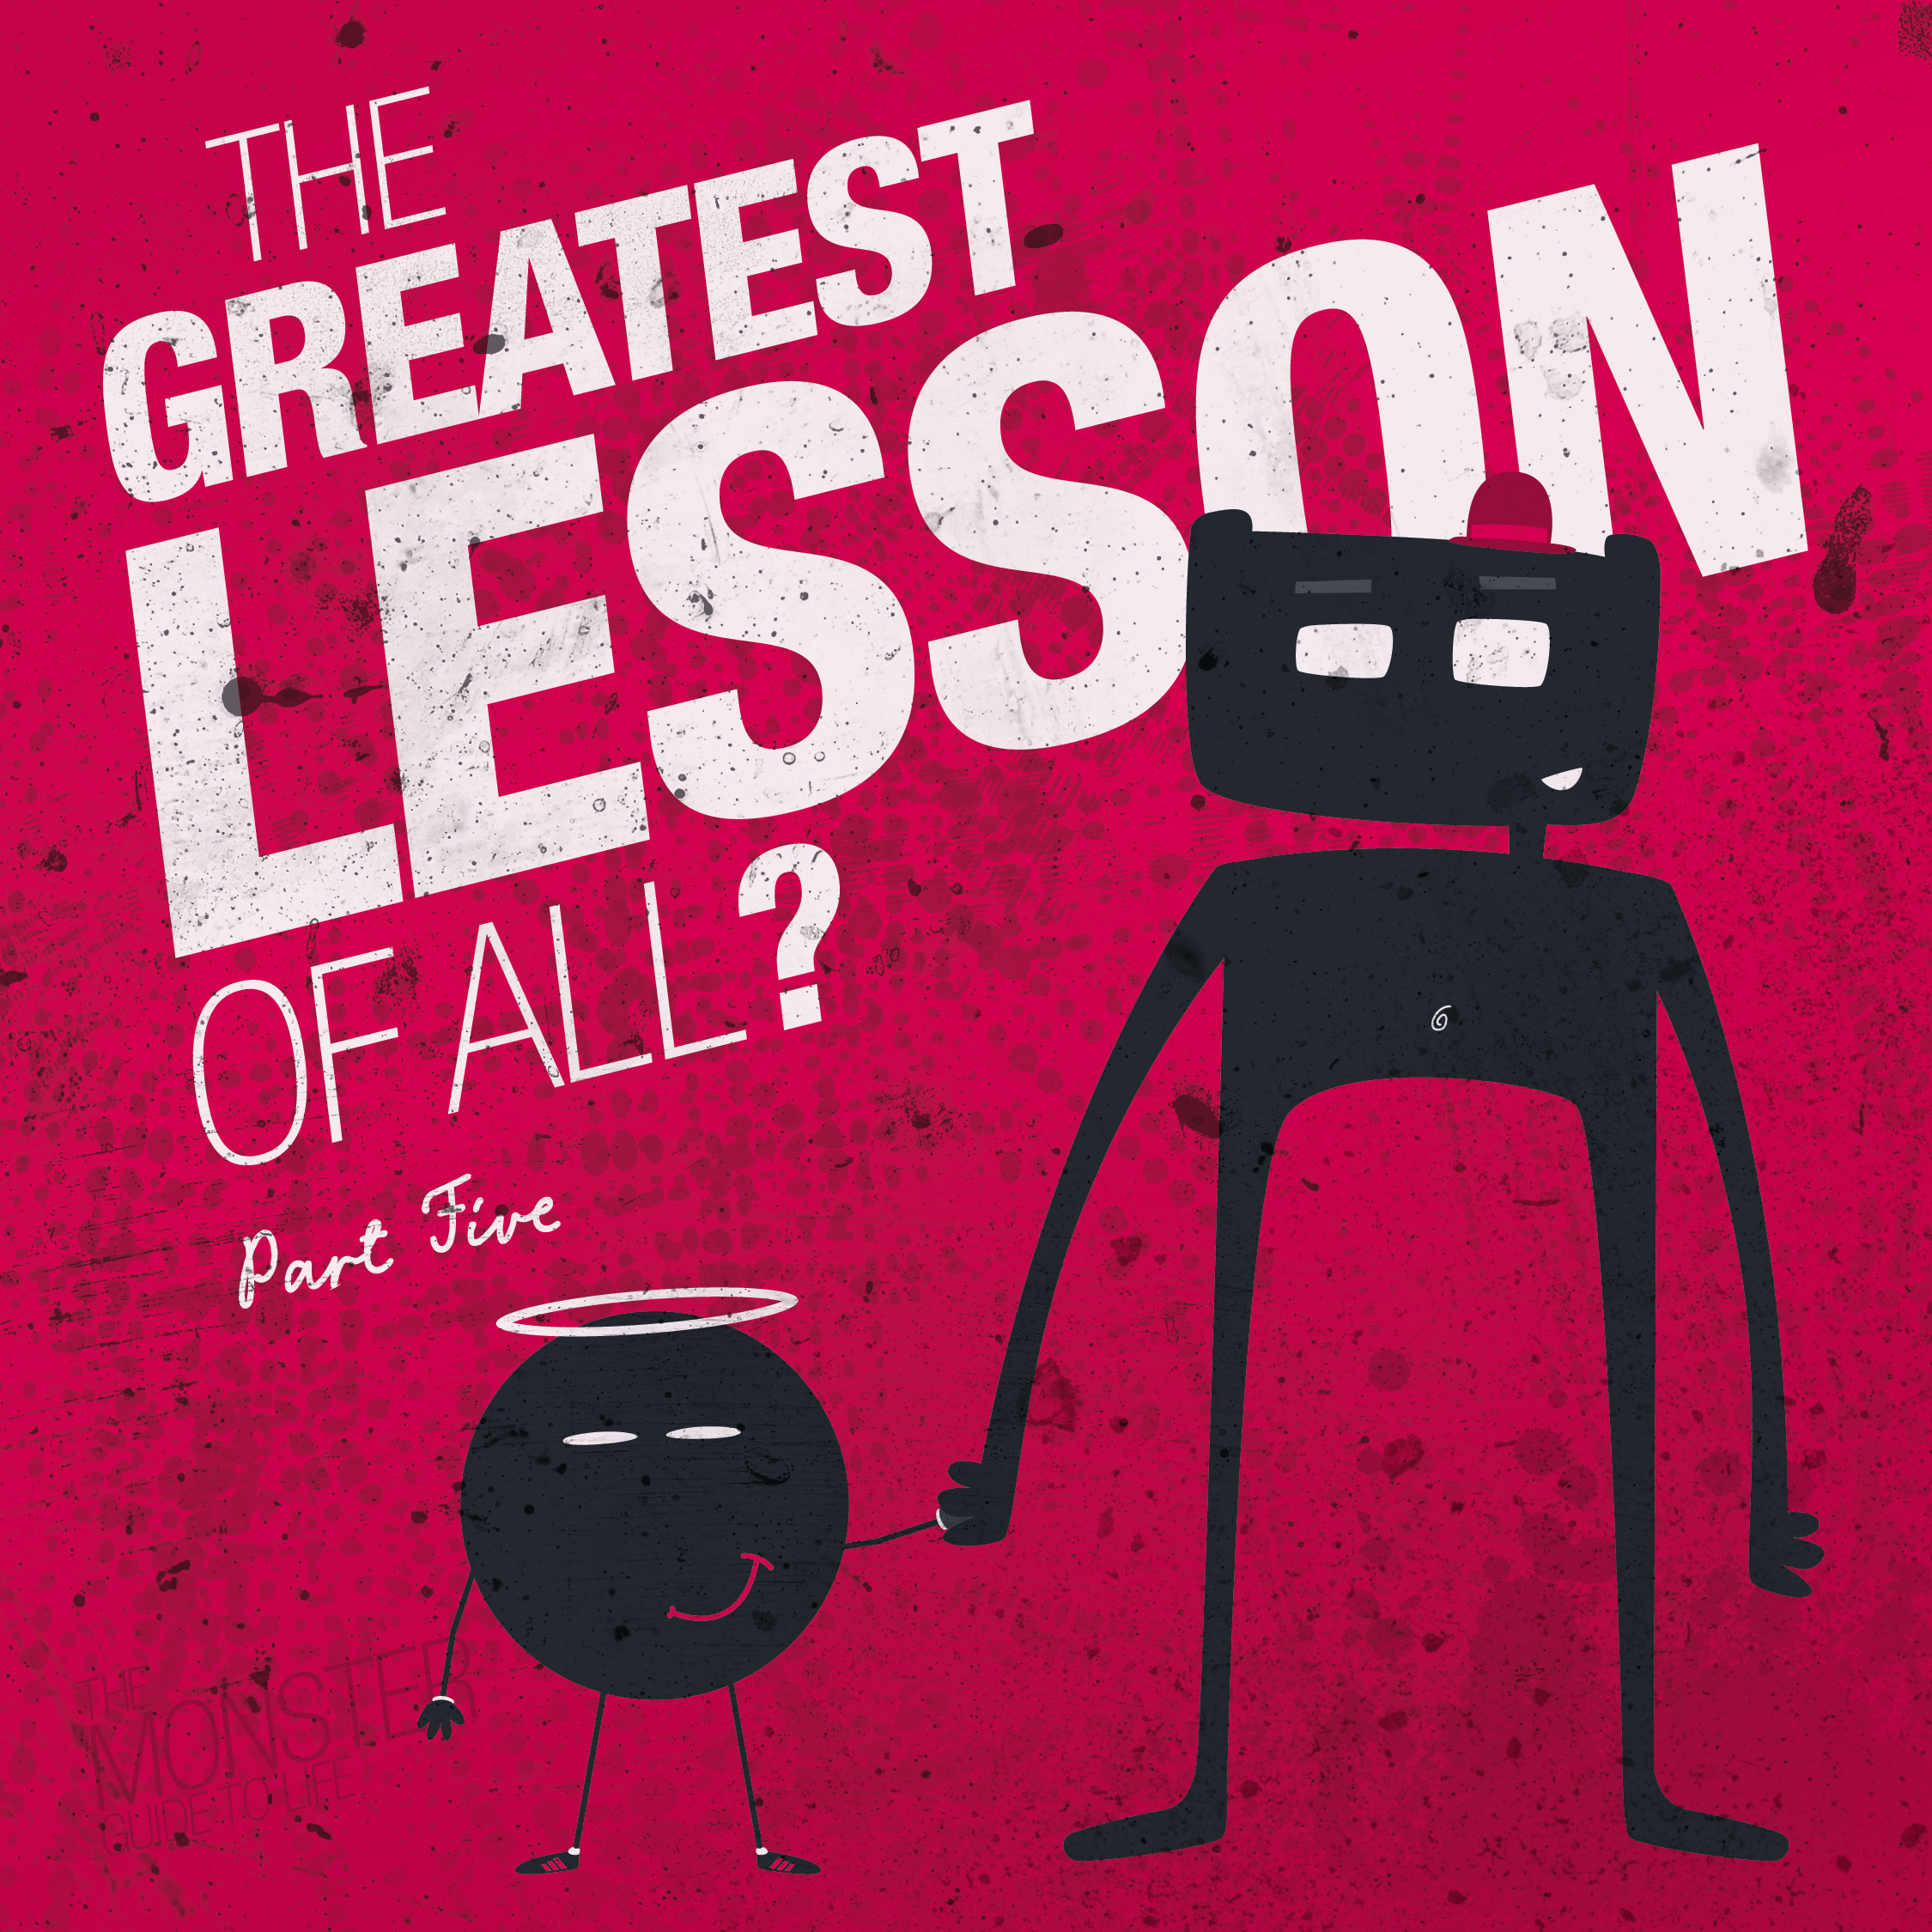 The Greatest Lesson Of All? Part Five